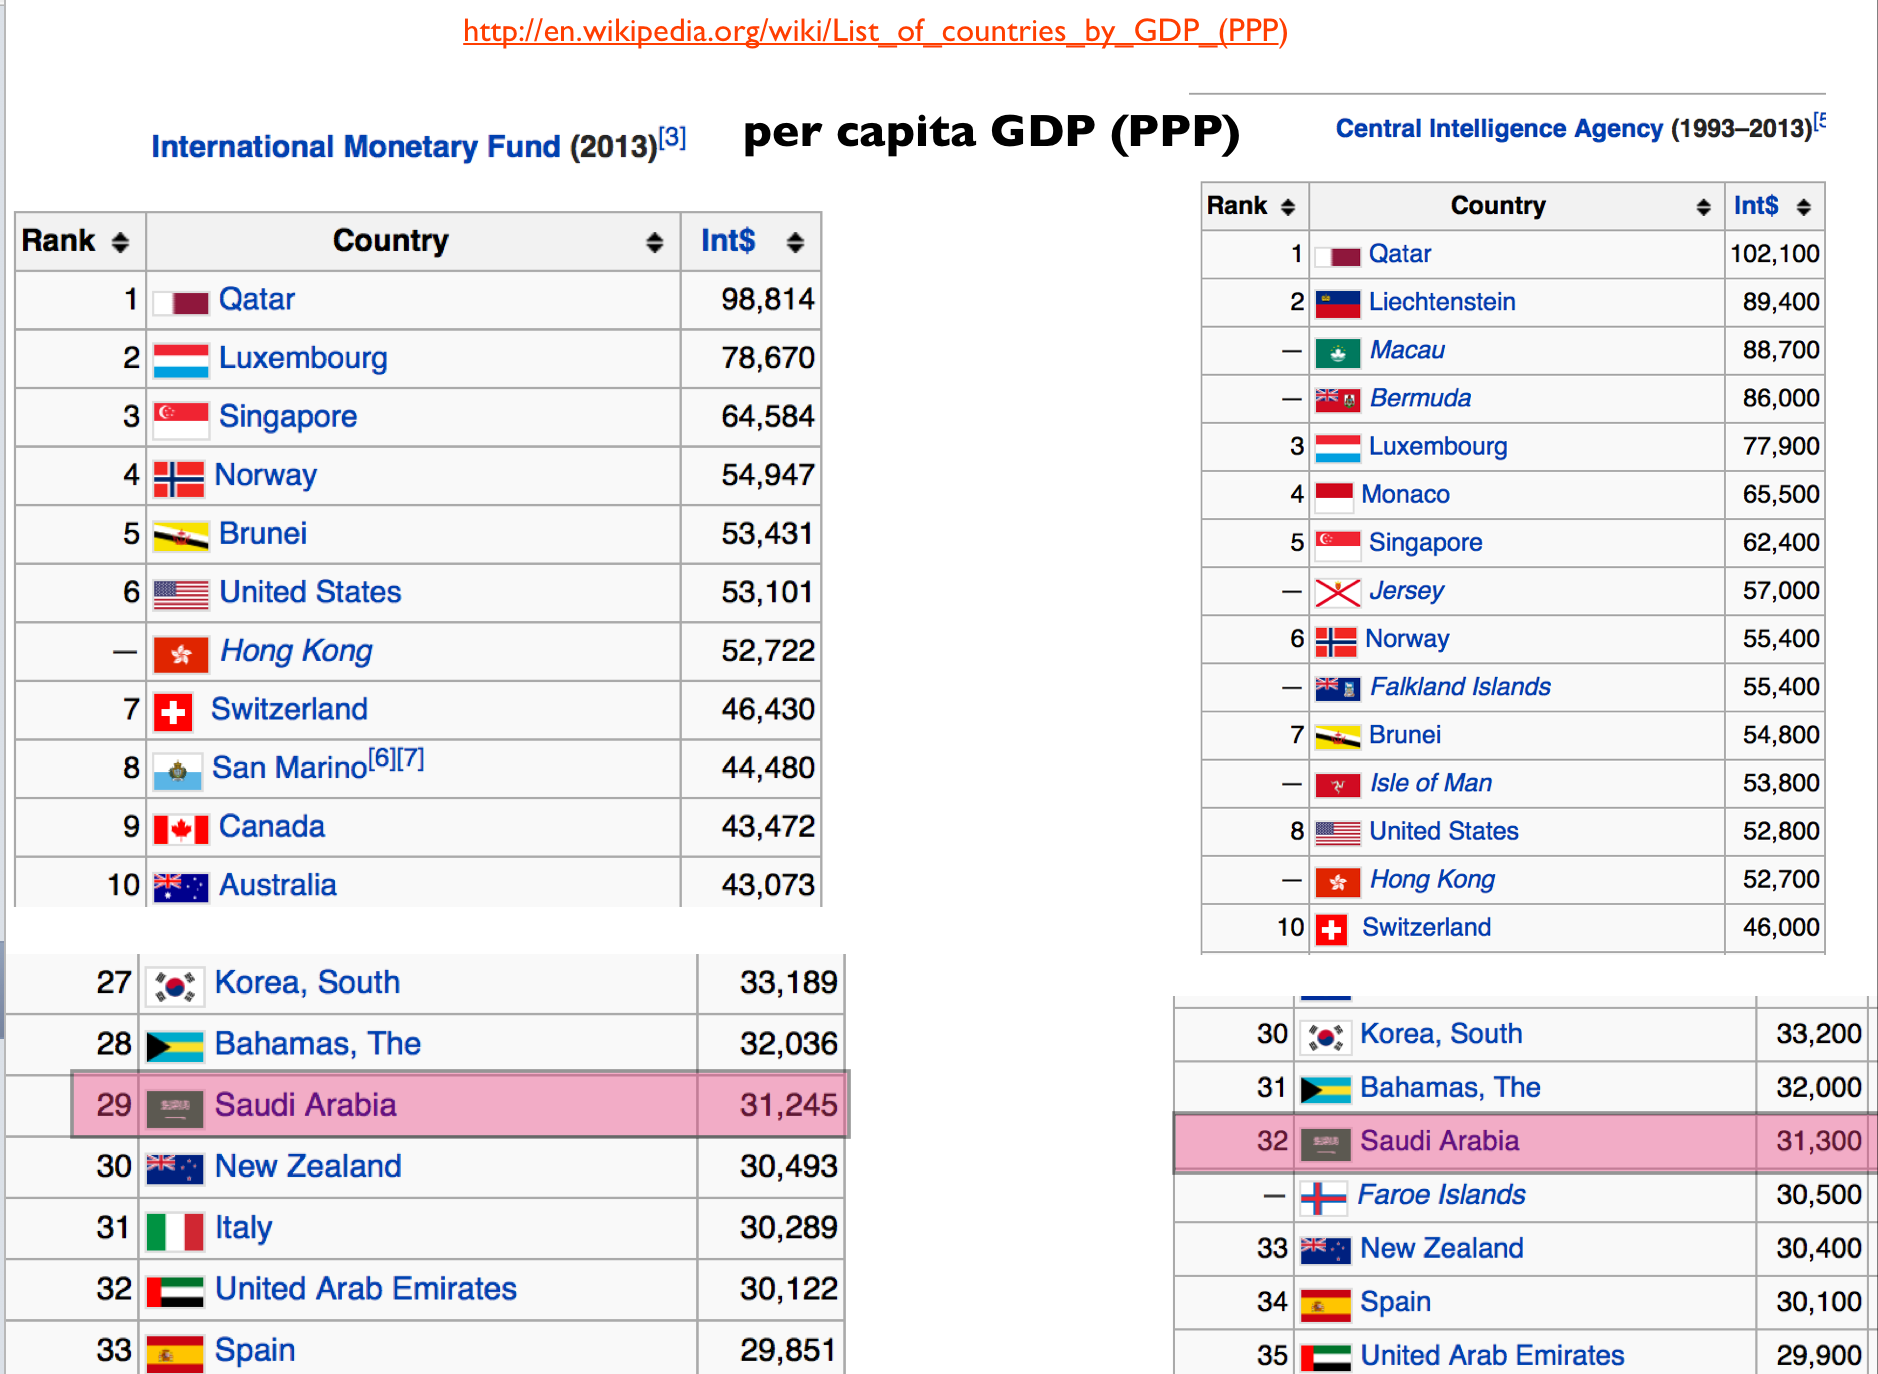 an analysis of gdp per capita of third world countries Such third world countries are also unable to increase their gross domestic output per capita because gdp must increase at a rate faster than population, and with generally faster population growth than more developed countries, this is difficult.